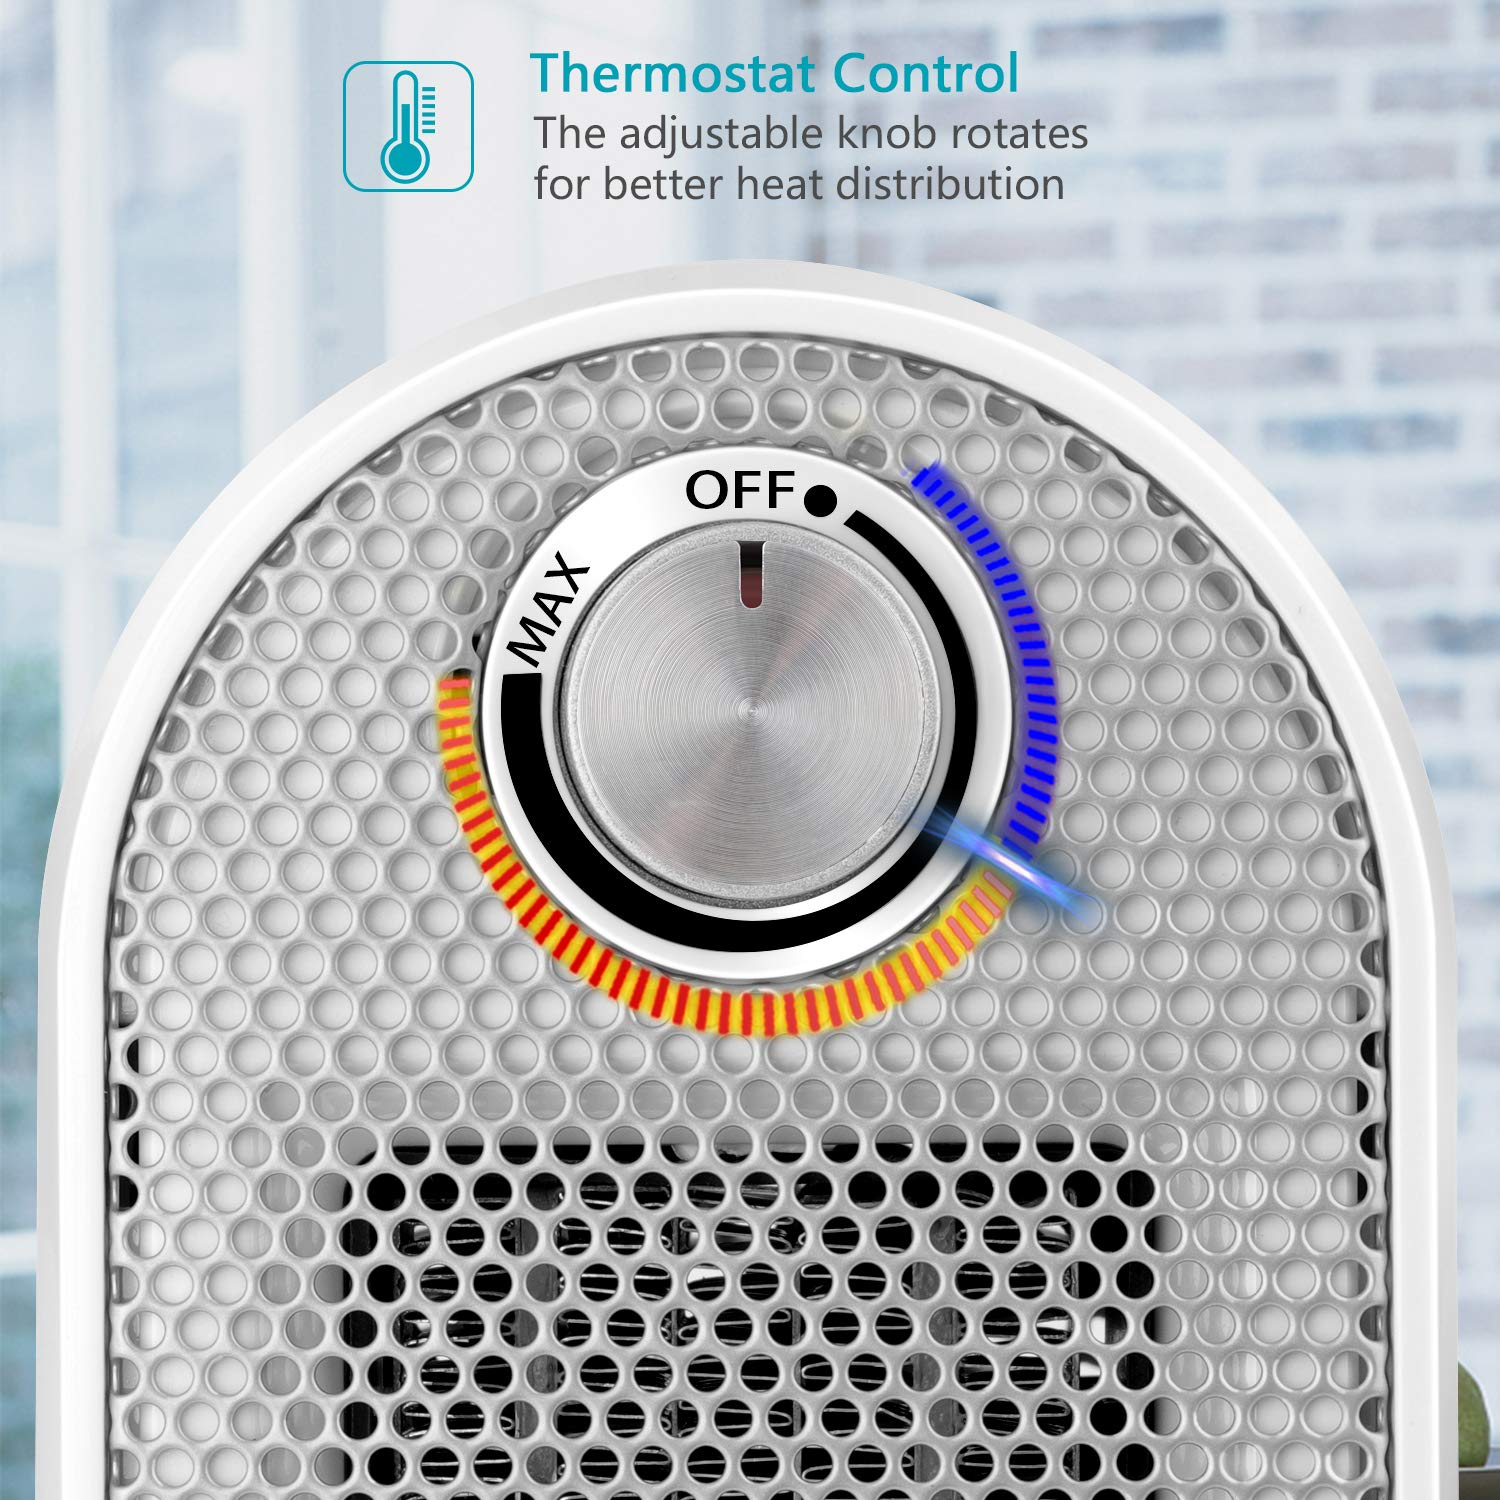 ETL Approved Fast Heating 500 Watt Personal Space Ceramic Heater for Office Desk Home Adjustable Thermostat Overheat Protection Quiet and Powerful Small Portable Electric Heater for Work Study